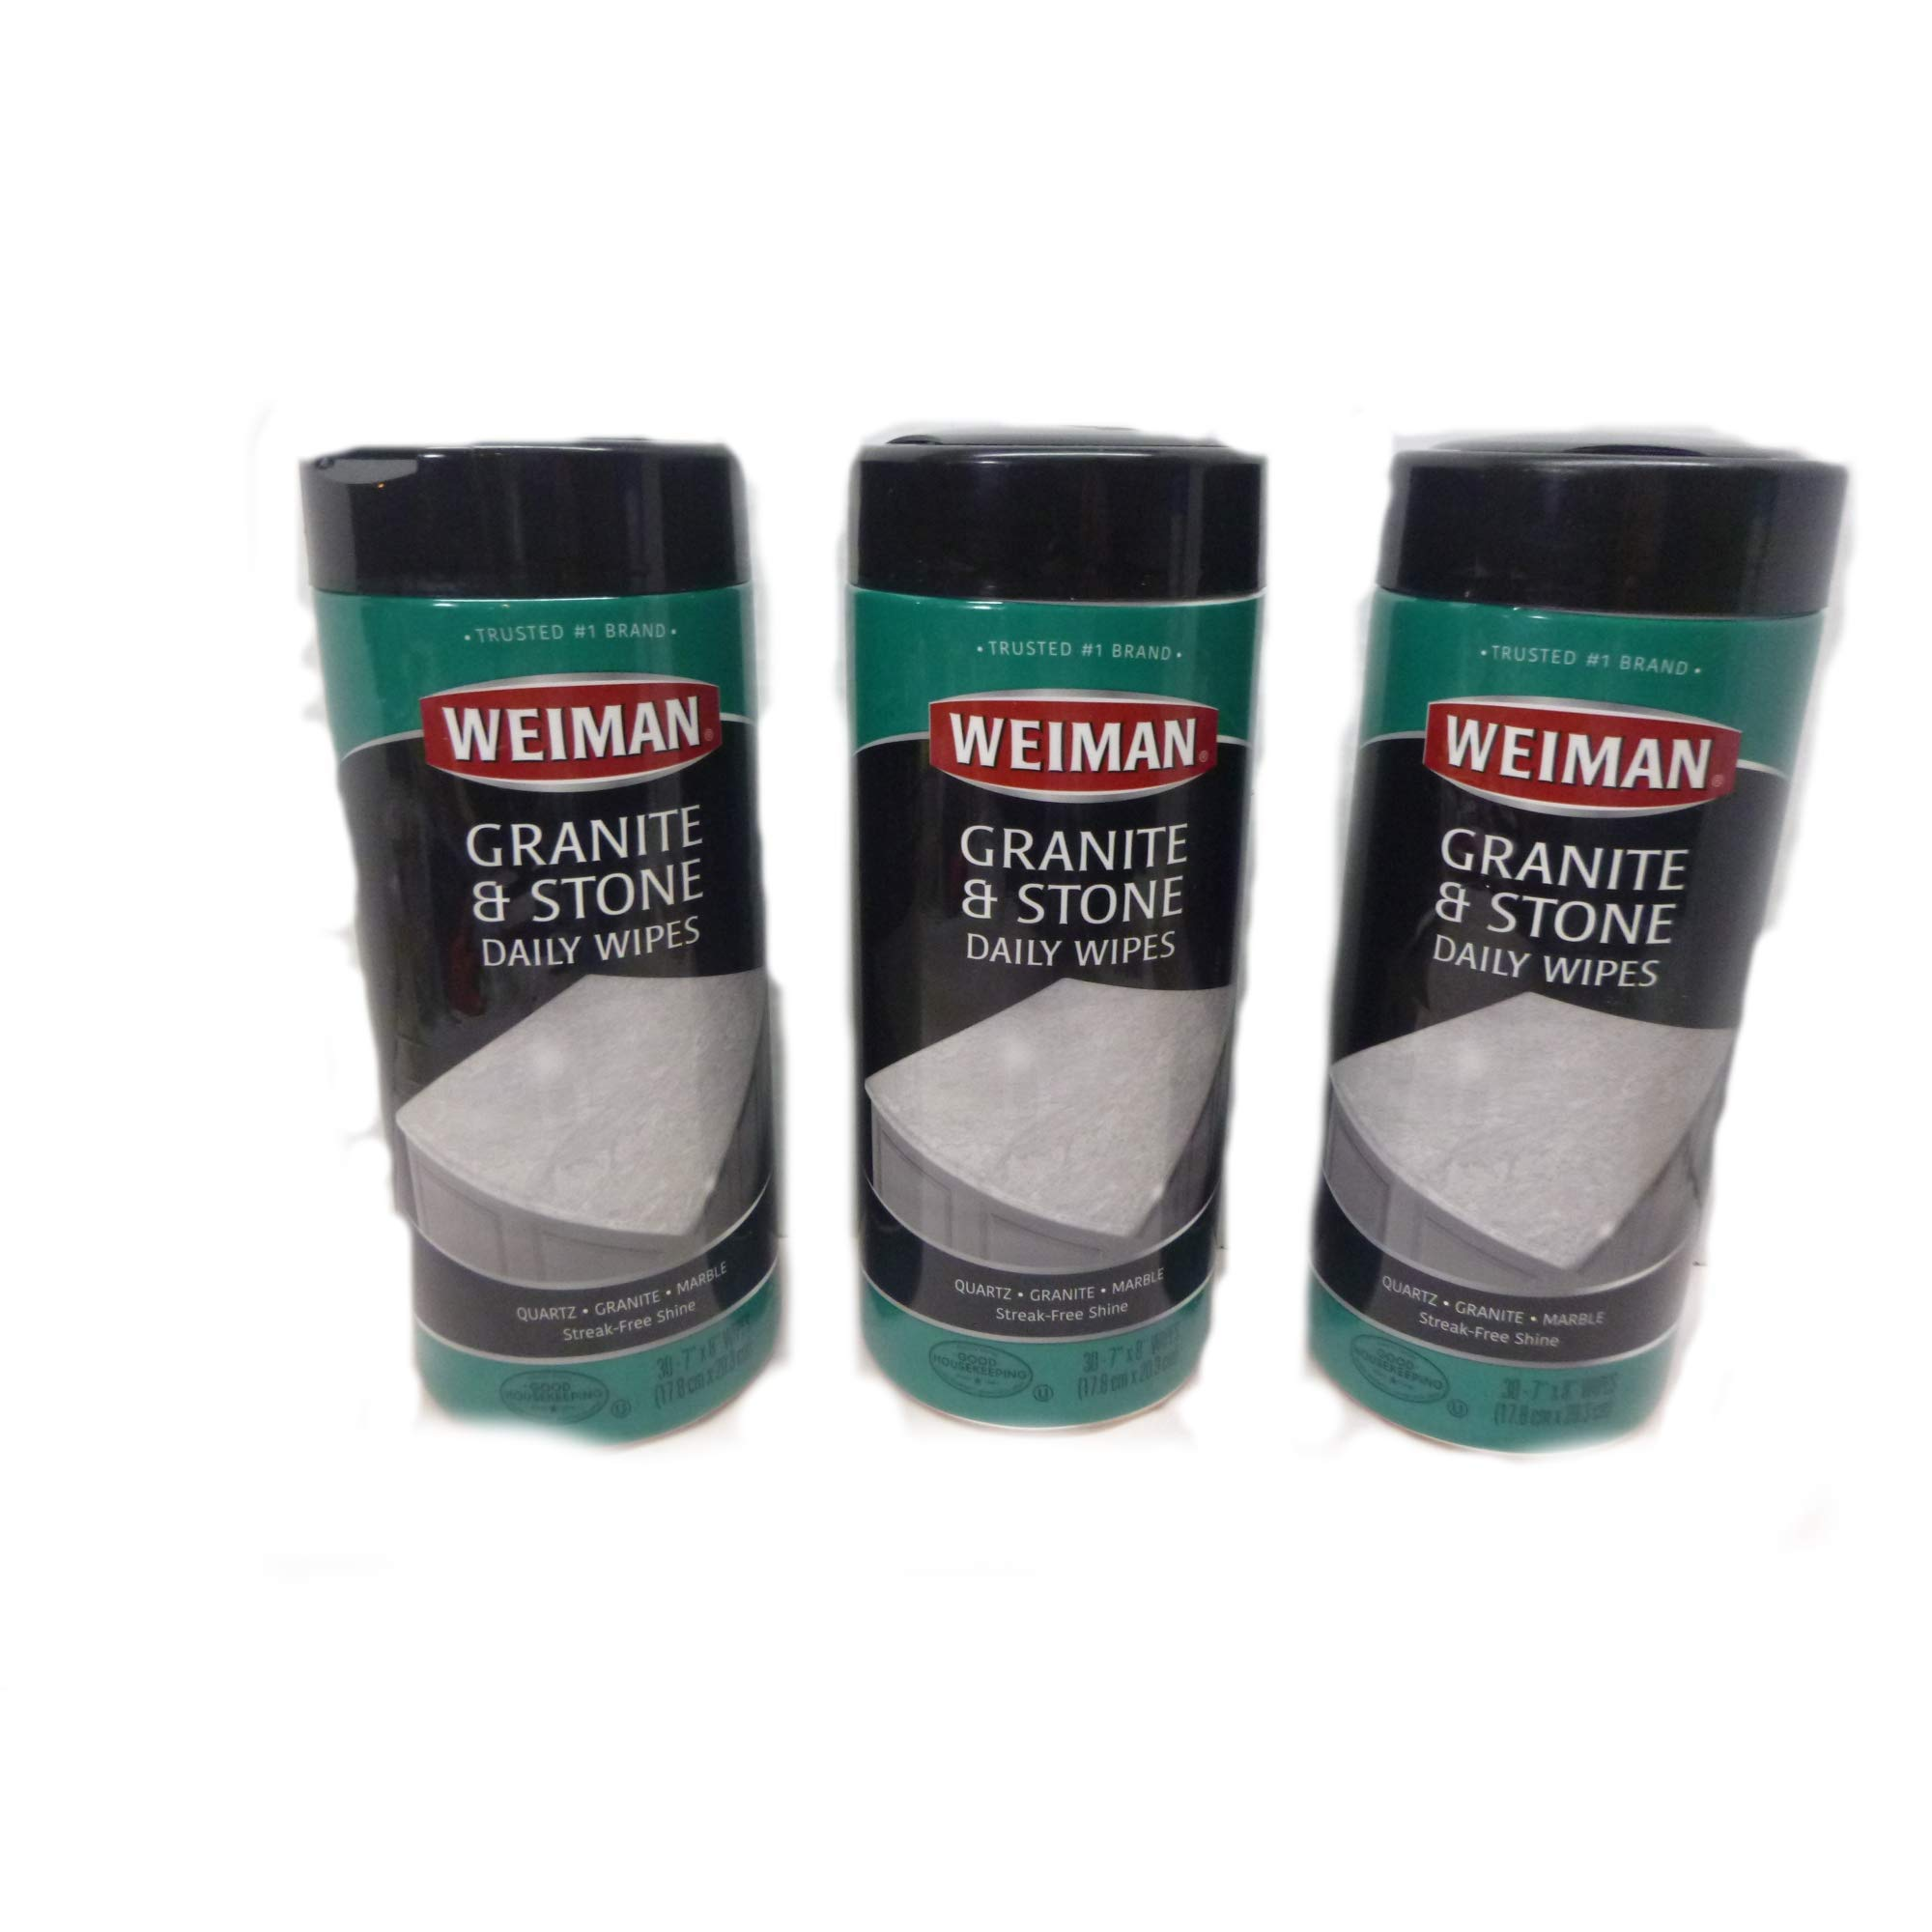 Weiman Granite & Stone Wipes 30 ct Pack of 3 Cleans Granite Marble Non porous hard surface cleaner